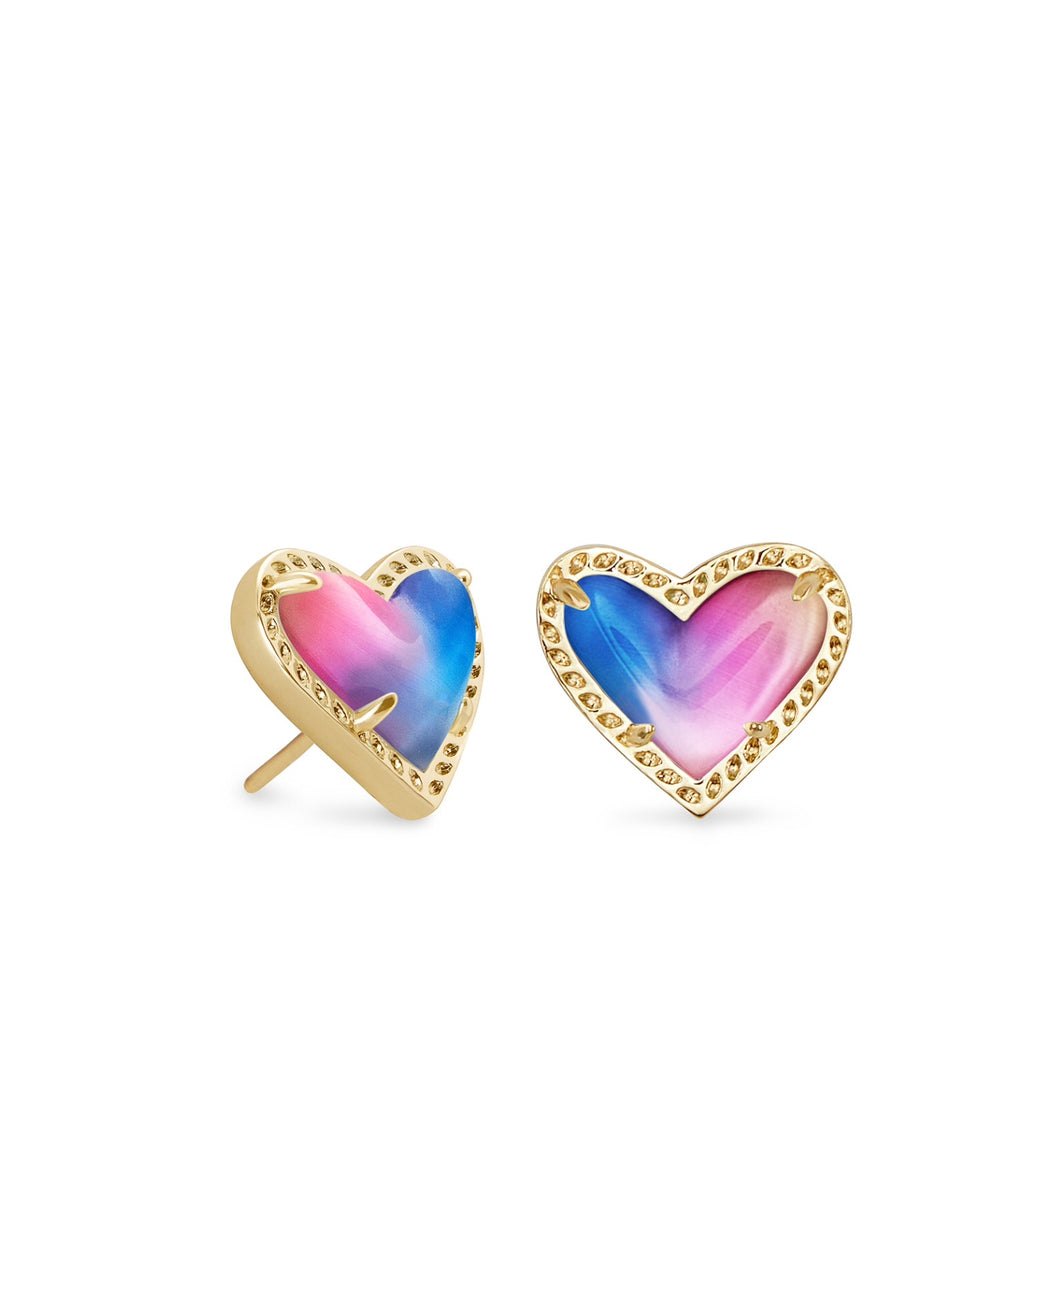 Kendra Scott: Ari Heart Stud - Watercolor Illusion - The Vogue Boutique